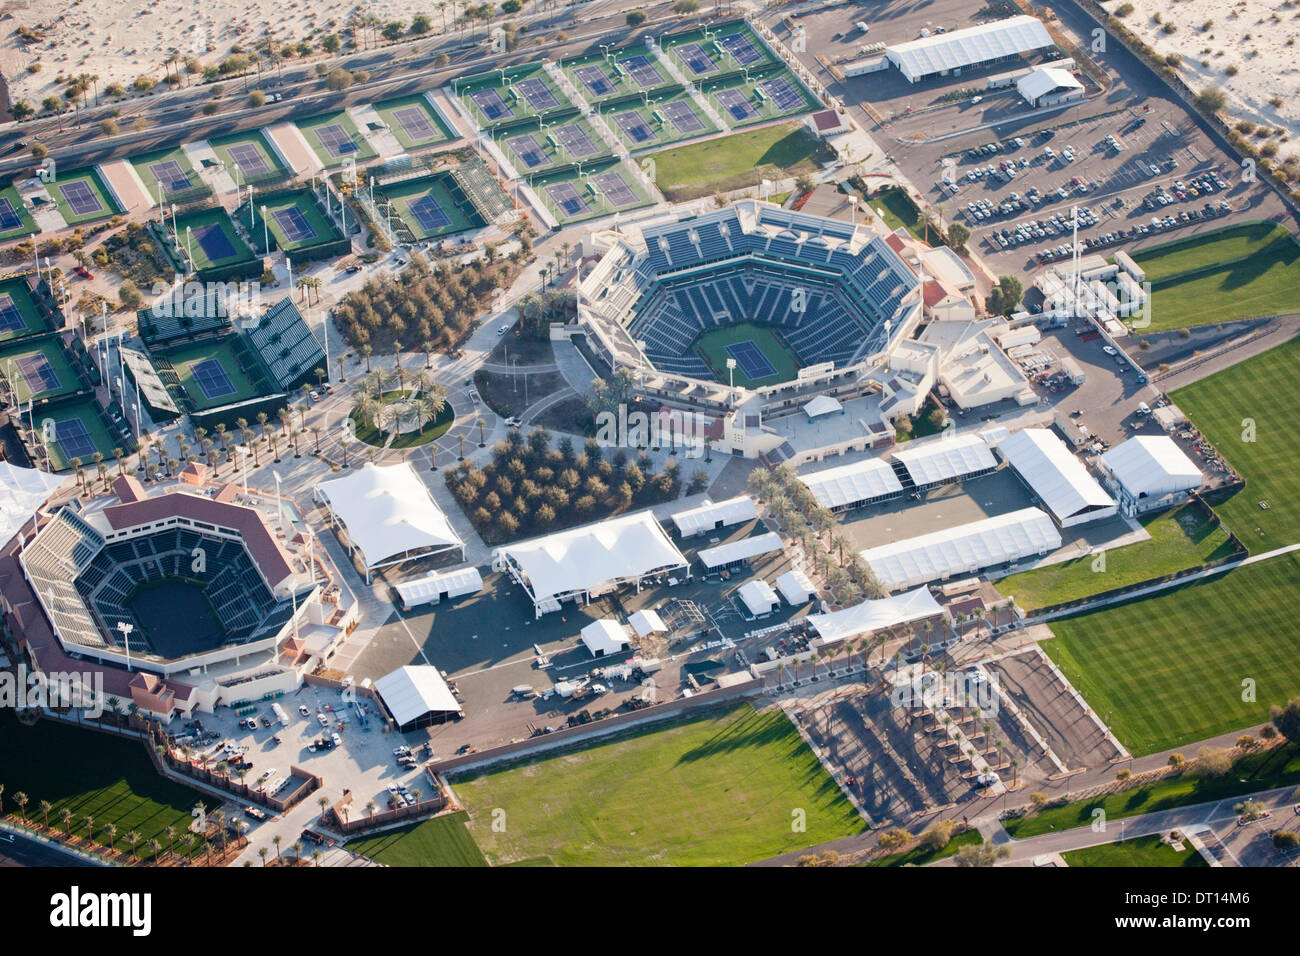 Nice Aerial View Of The Updated And Expanded INDIAN WELLS TENNIS GARDENS, Idian  Wells, California Images